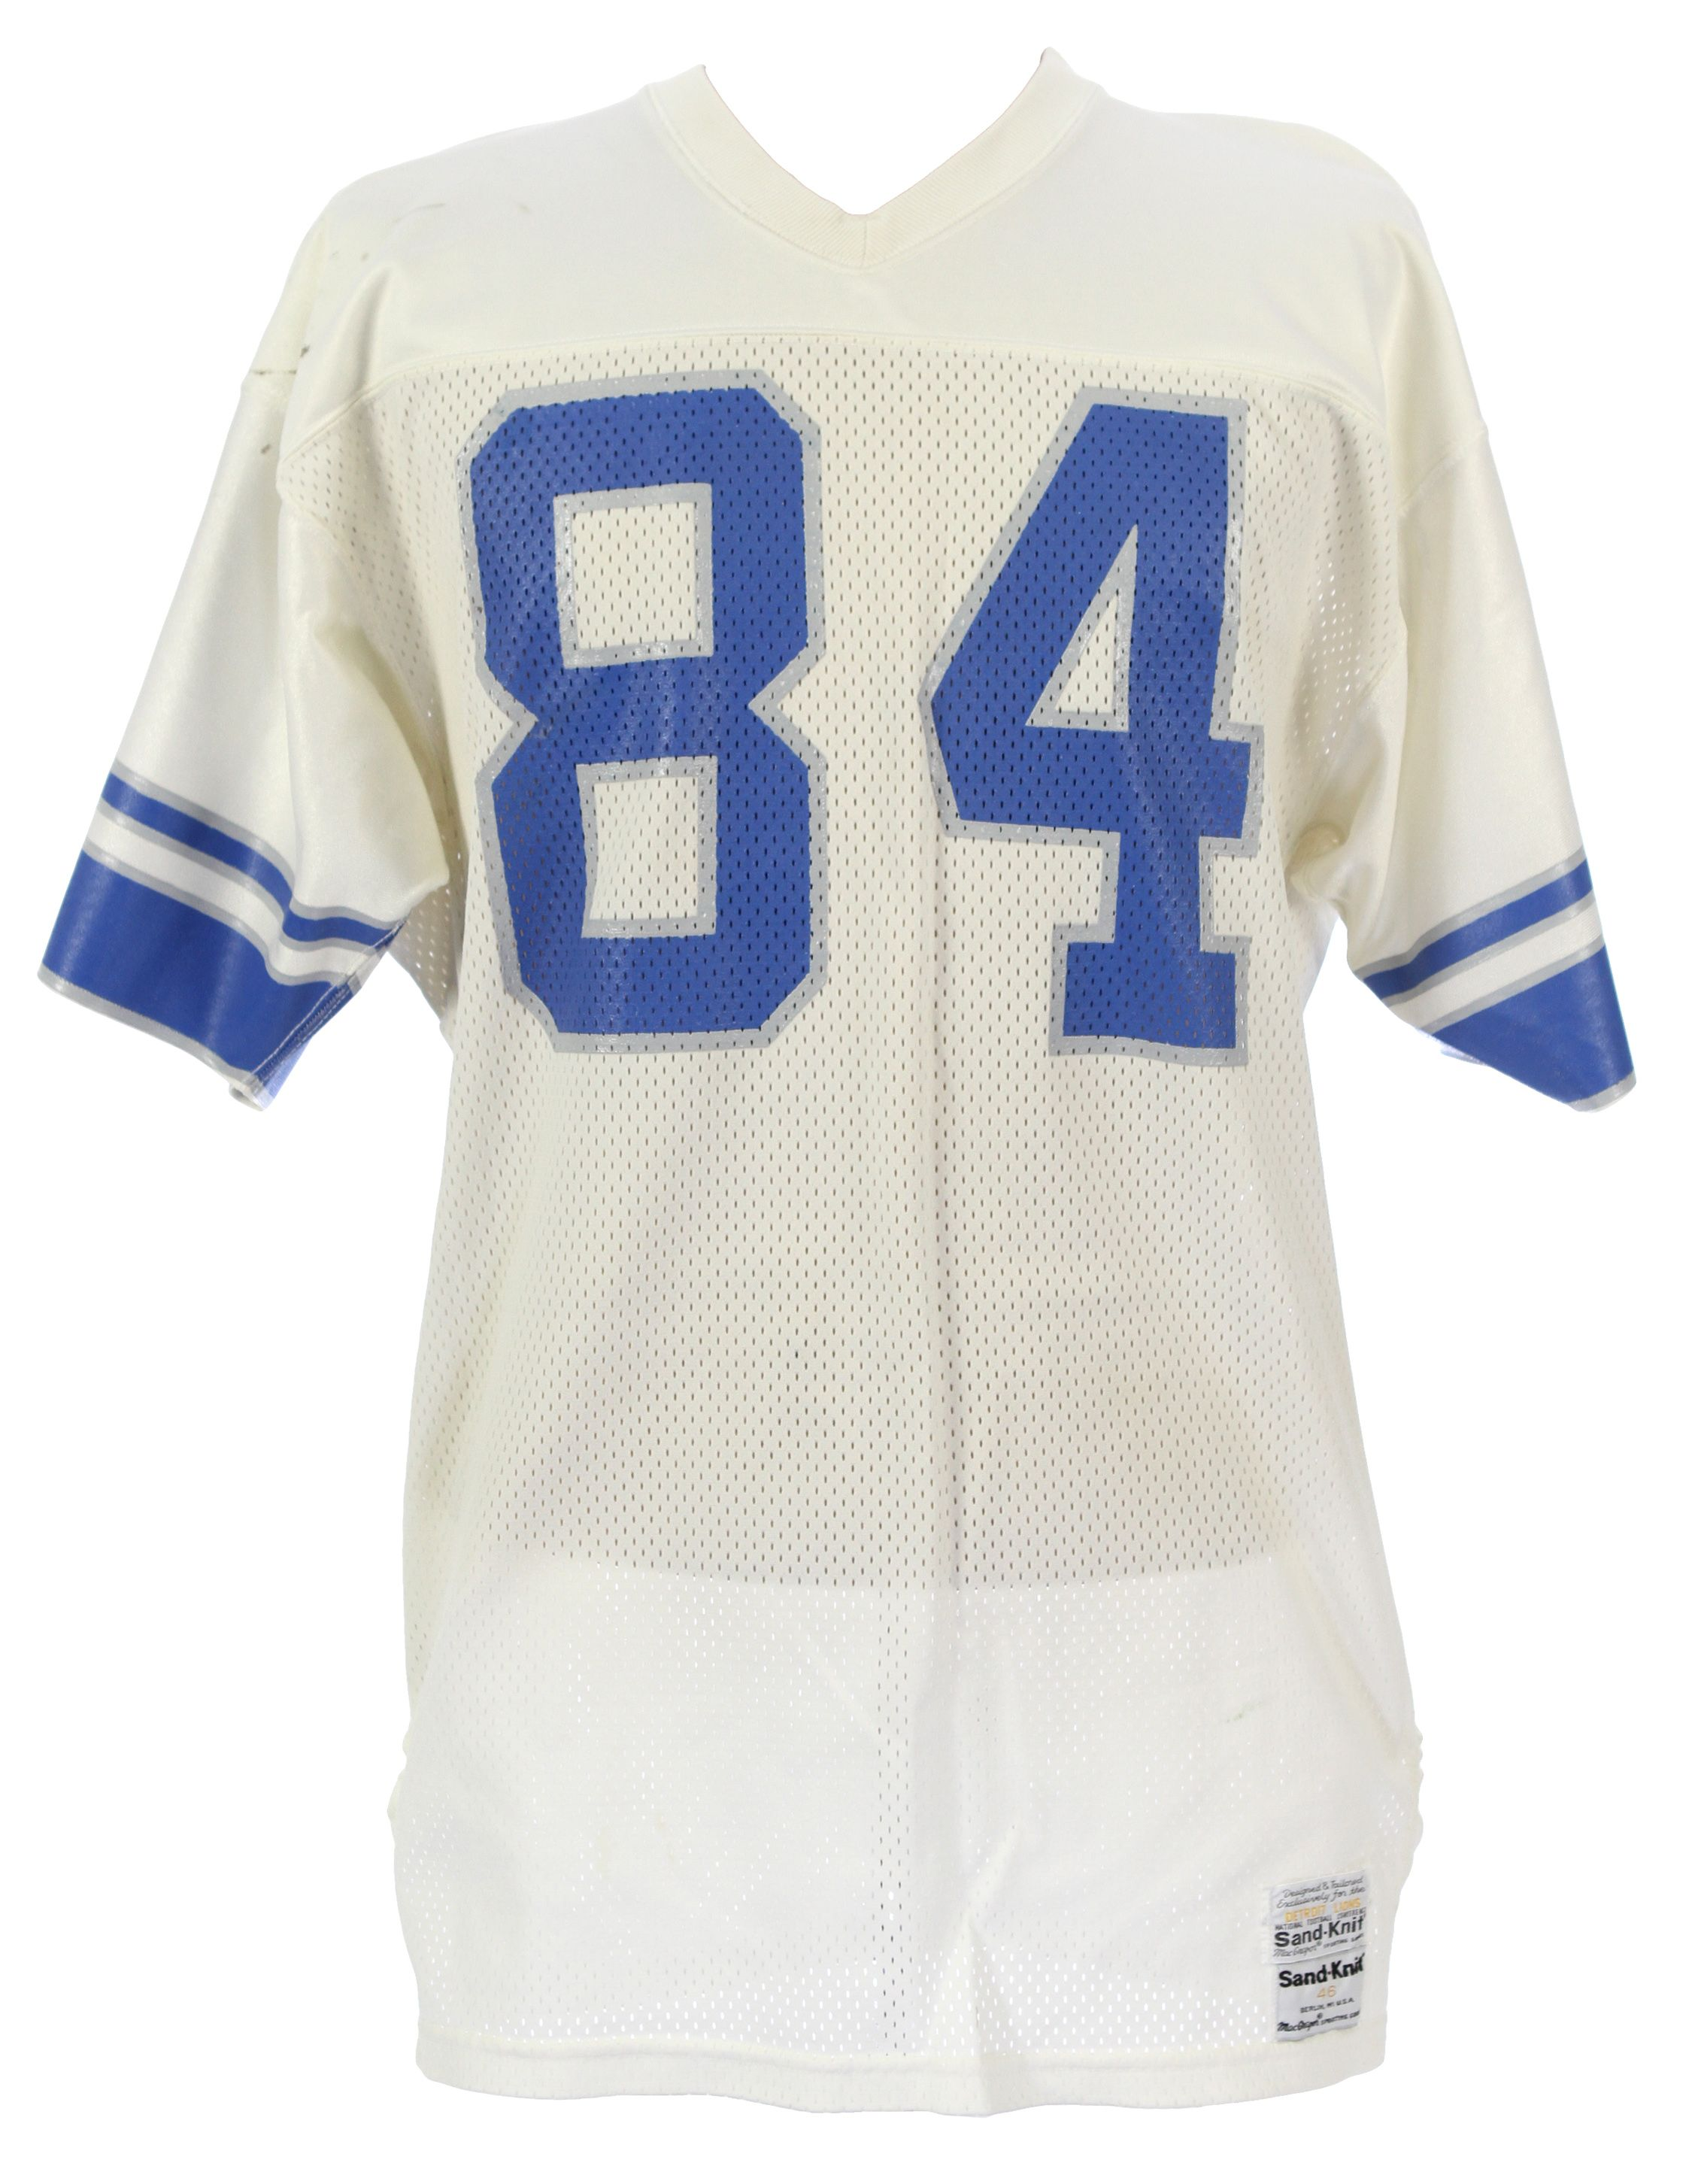 Lot Detail 1985 87 Rob Rubick Detroit Lions Game Worn Road Jersey  for sale usYLInvs